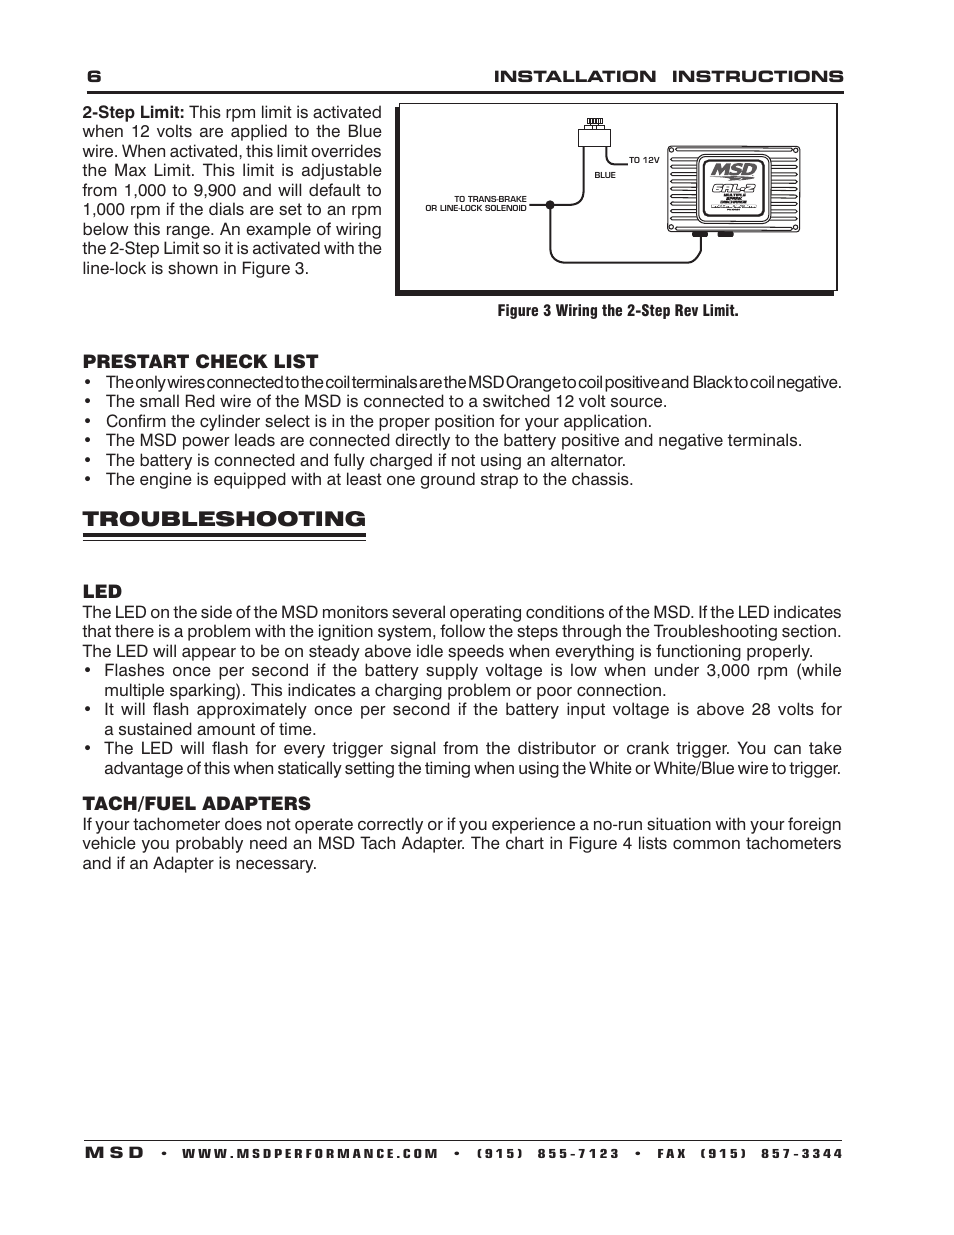 Troubleshooting Msd 6421 6al 2 Ignition Control Installation User Wiring Instructions Example Manual Page 6 28